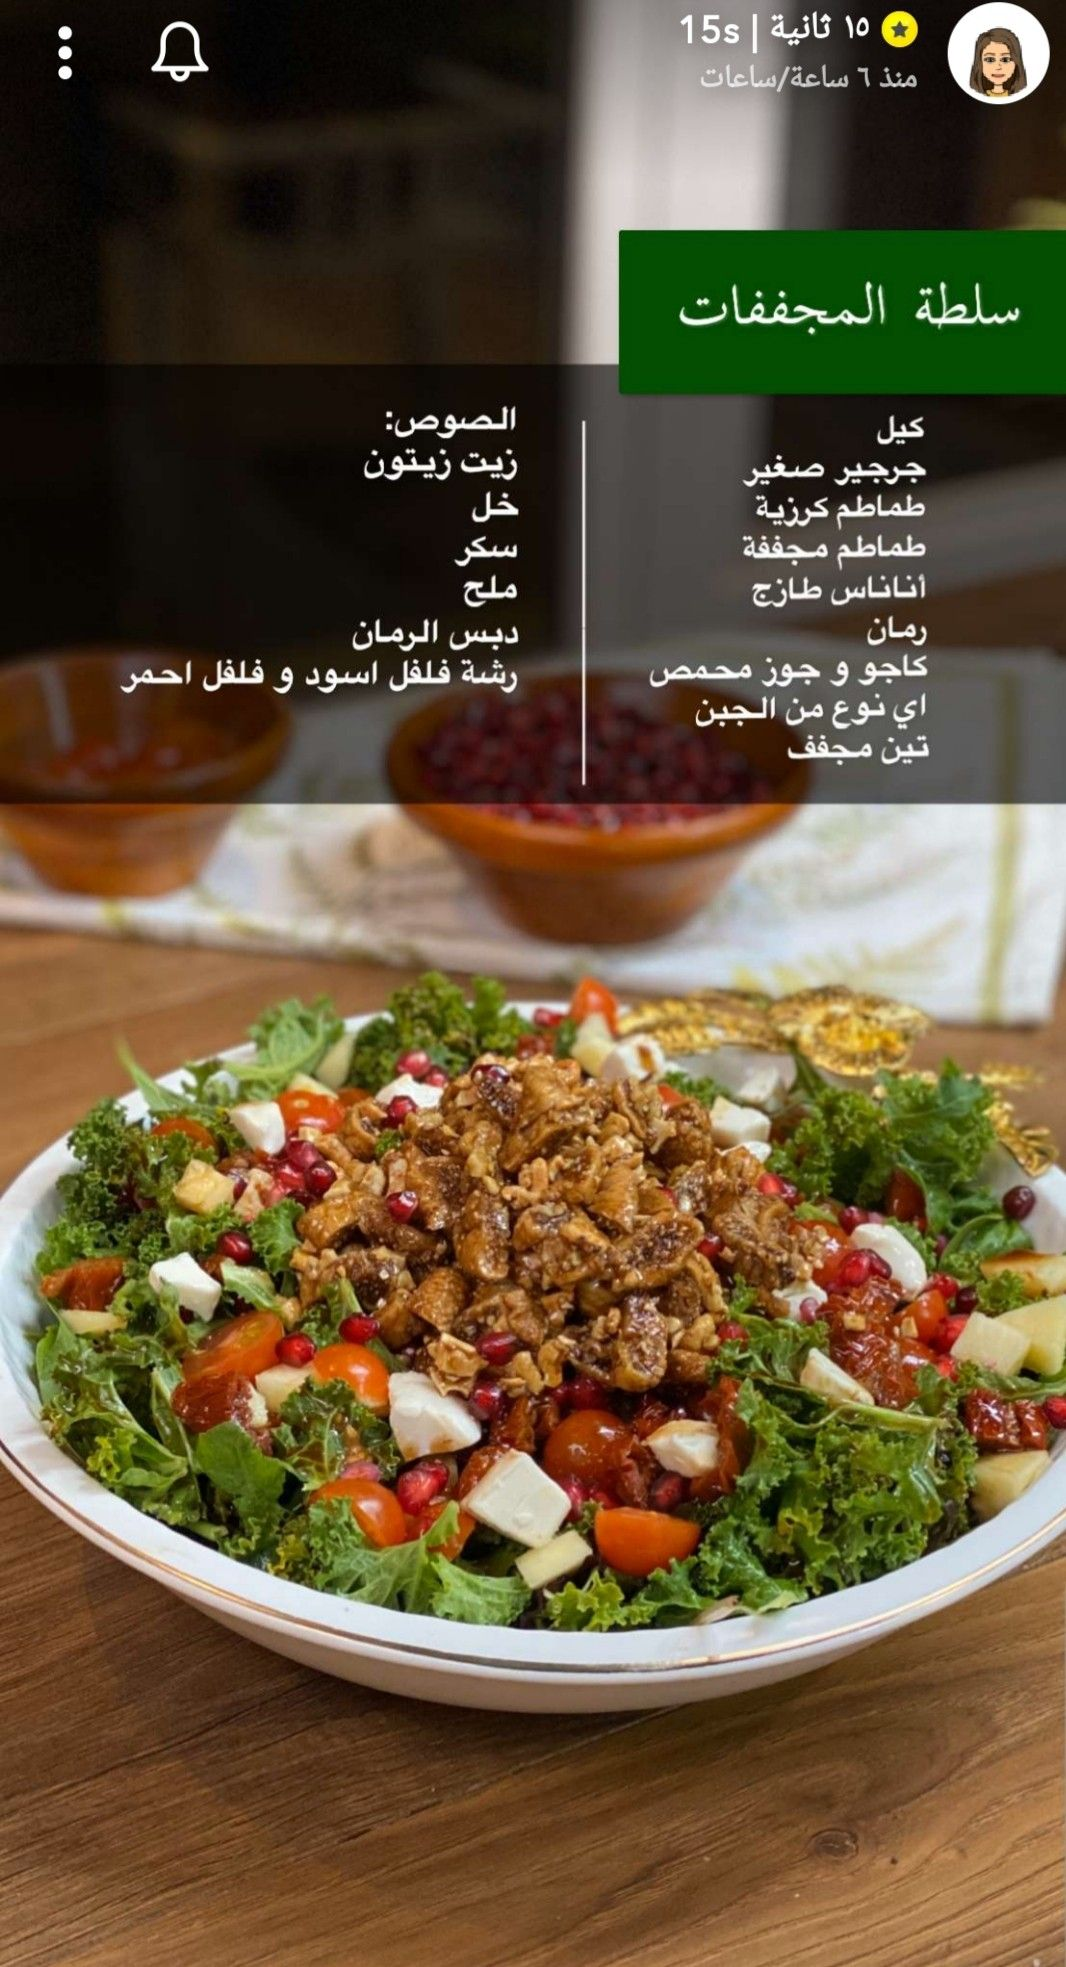 Pin By Chahira El Khadem On Food طبخ Cookout Food Health Fitness Food Healthy Diet Recipes